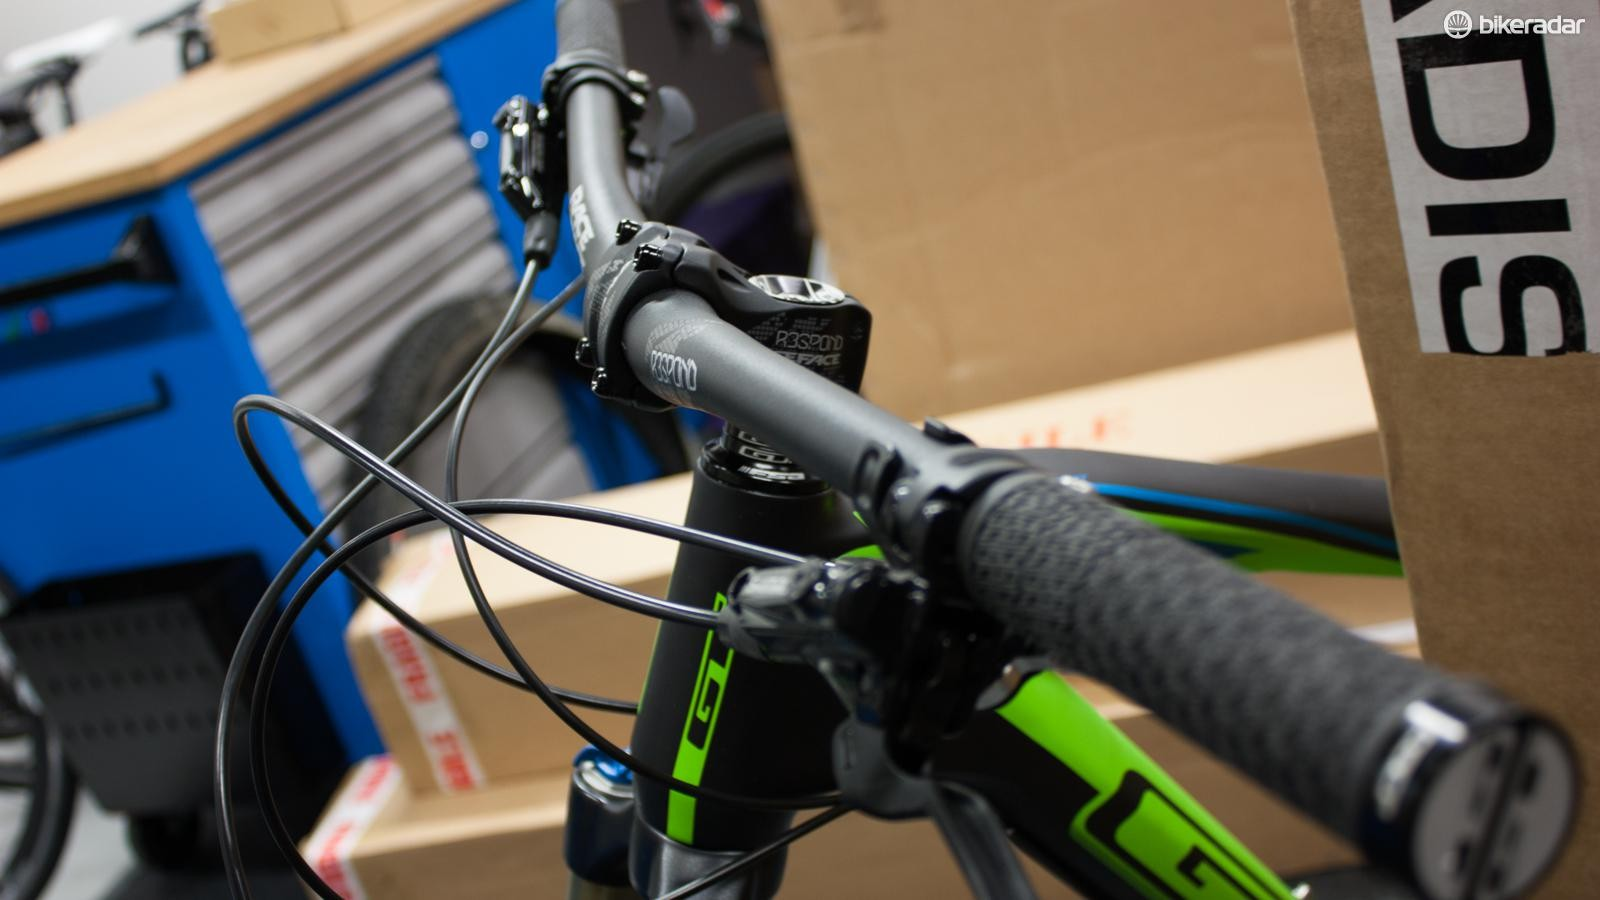 Most mountain bikes on sale today would benefit from a wider handlebar and a shorter stem